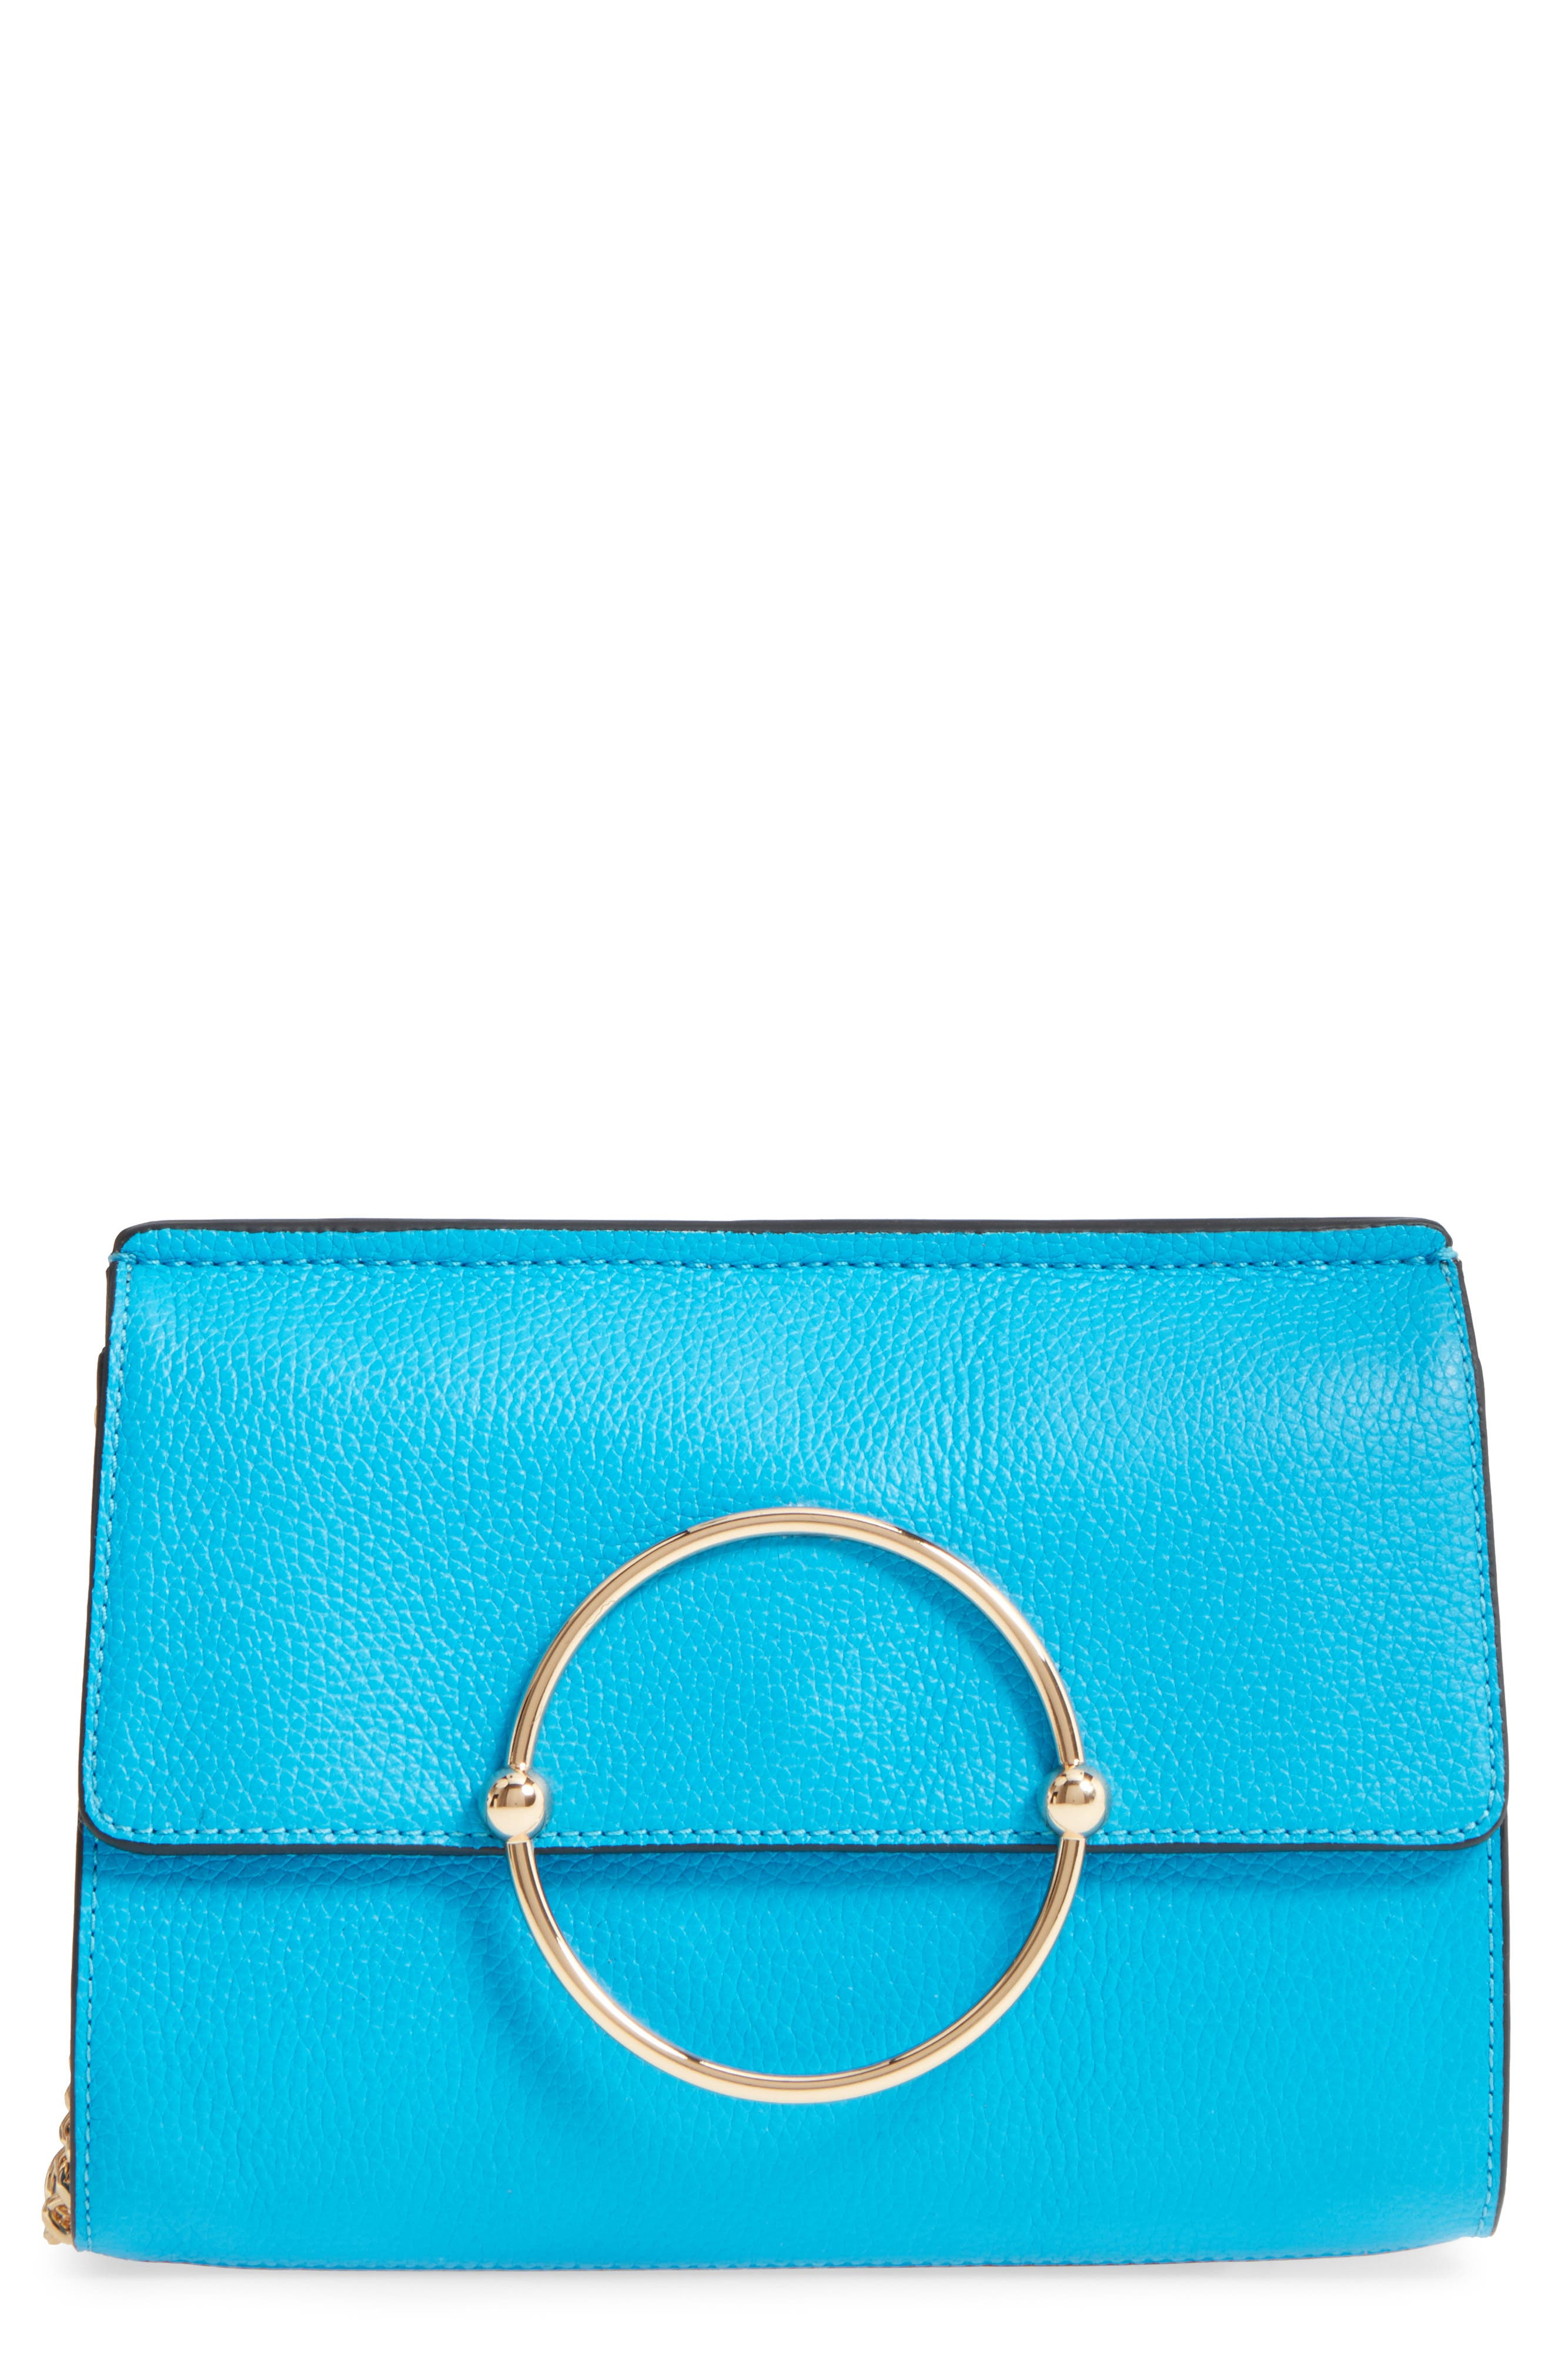 Main Image - Milly Astor Pebbled Leather Flap Clutch